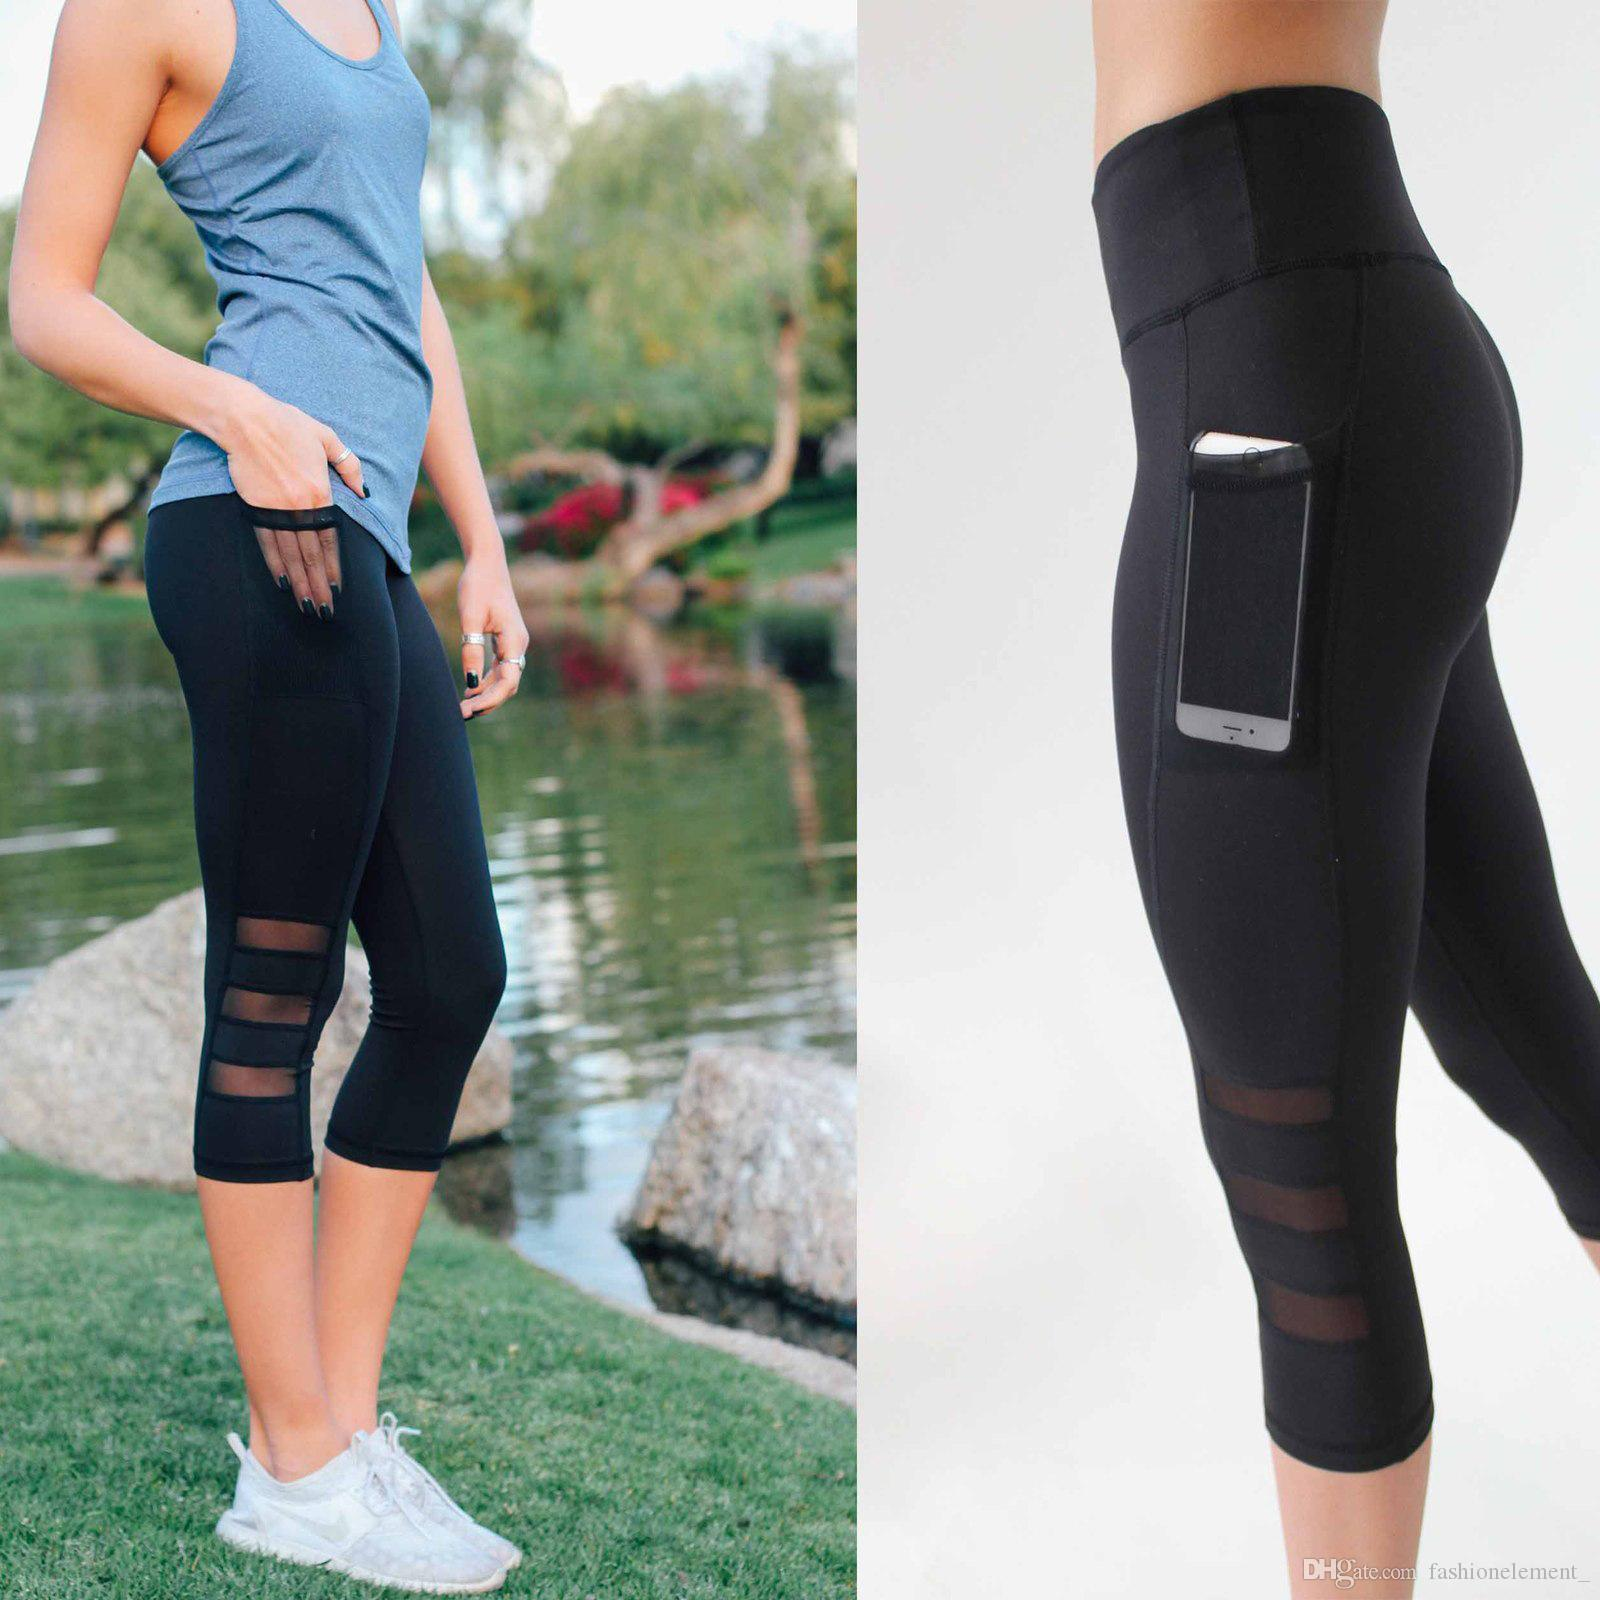 1d17bed092 2019 Yoga Pants Running Sports Leggings Side Pocket Cell Phone Capri Pants  Women Workout Gym Tight Trousers From Fashionelement_, $7.04 | DHgate.Com